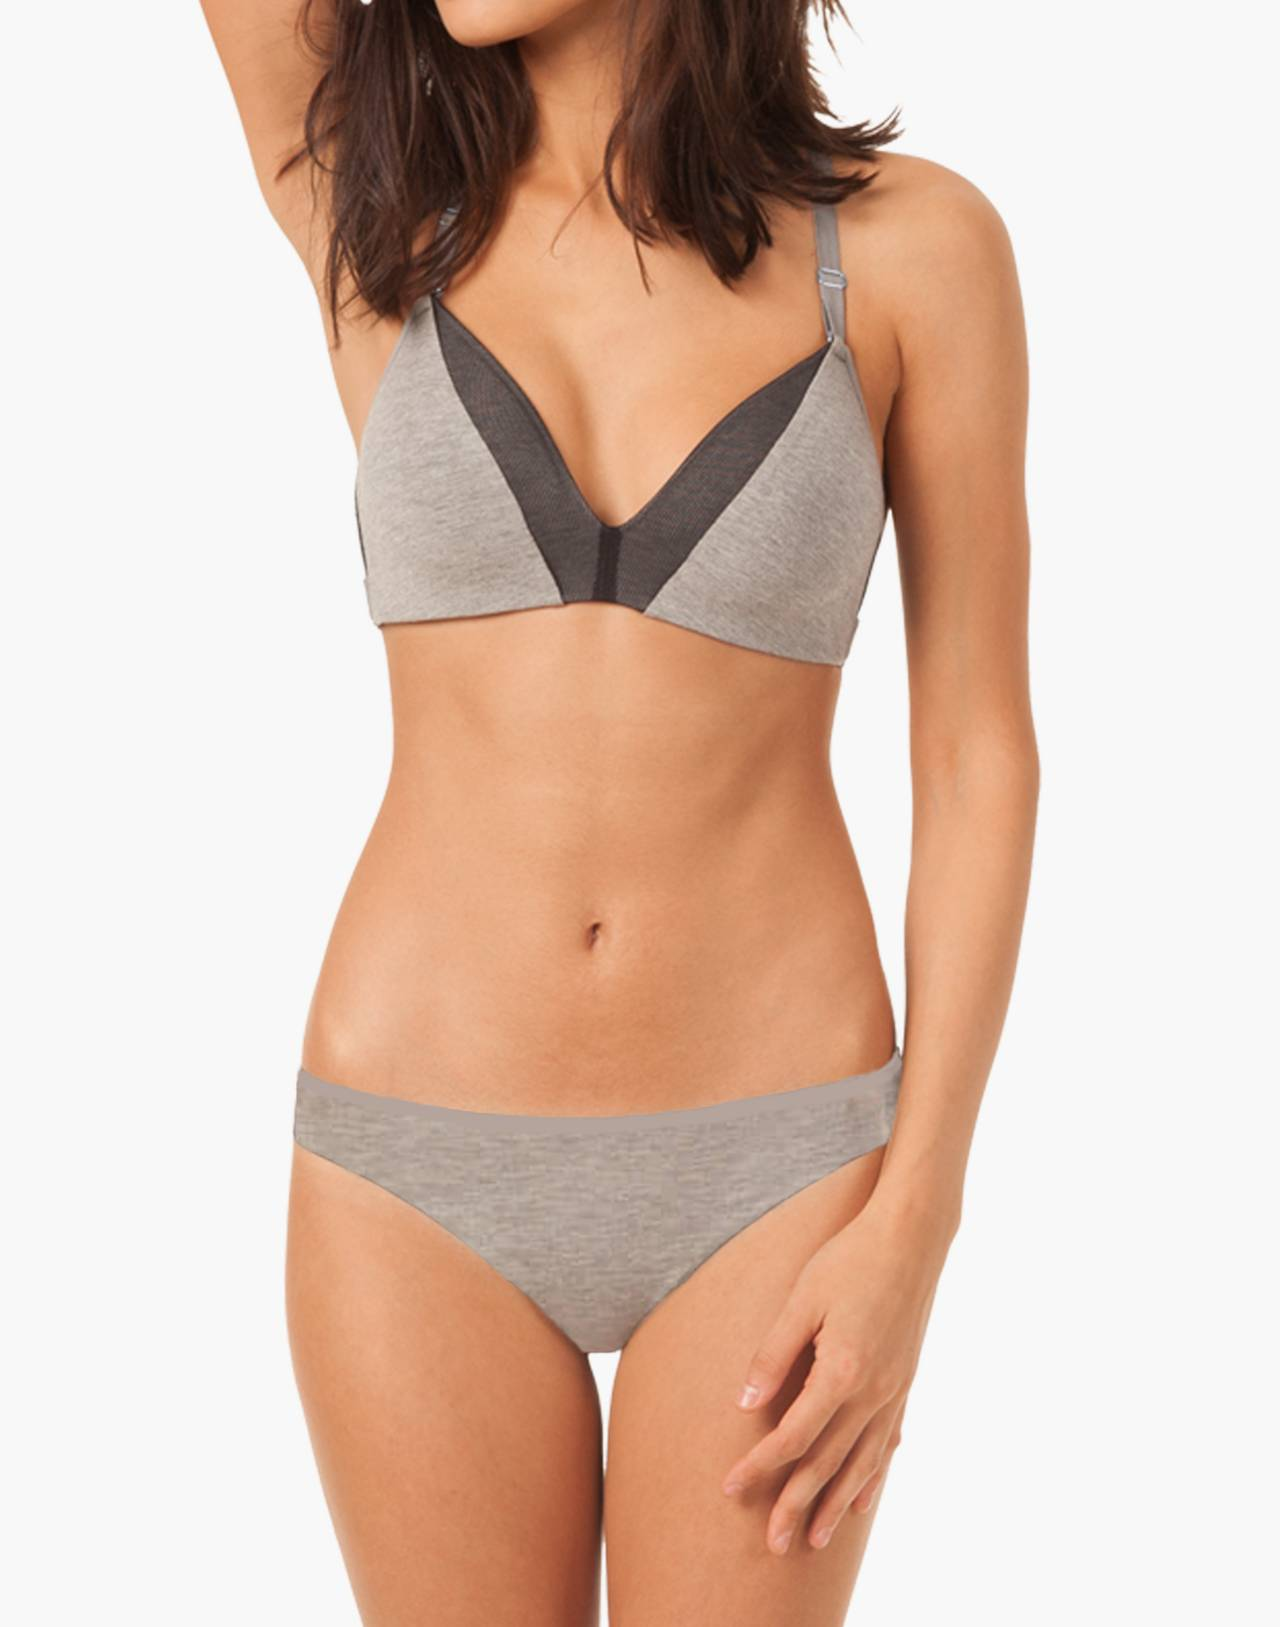 LIVELY™ All-Day Deep-V No-Wire Bra in gray image 1